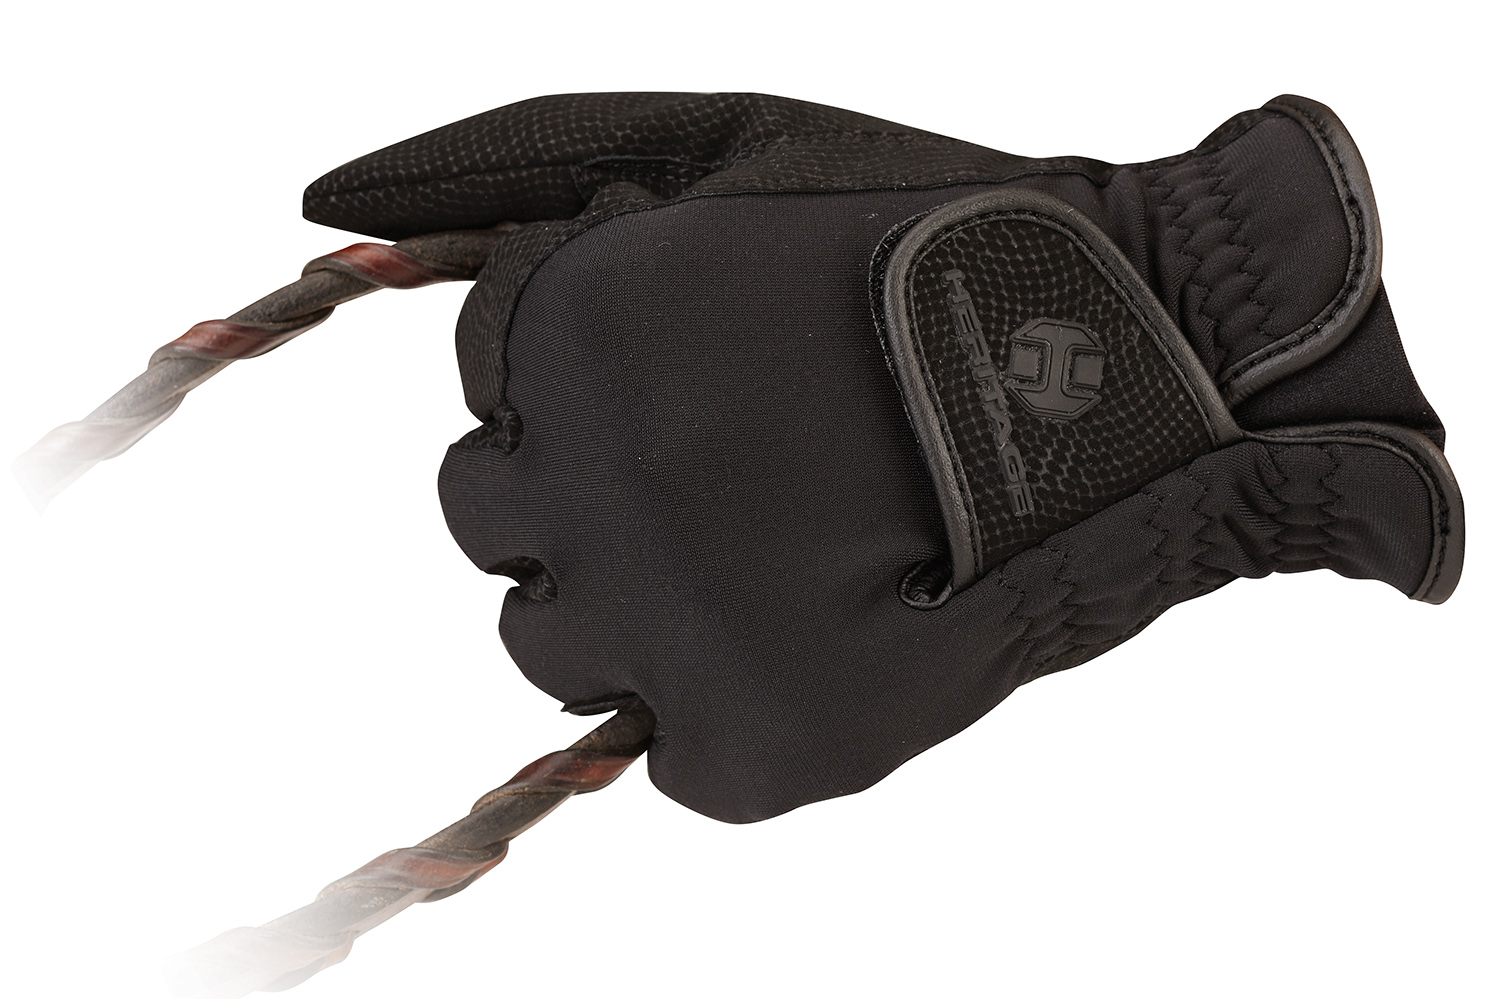 Heritage Child's Spectrum Winter Show Glove